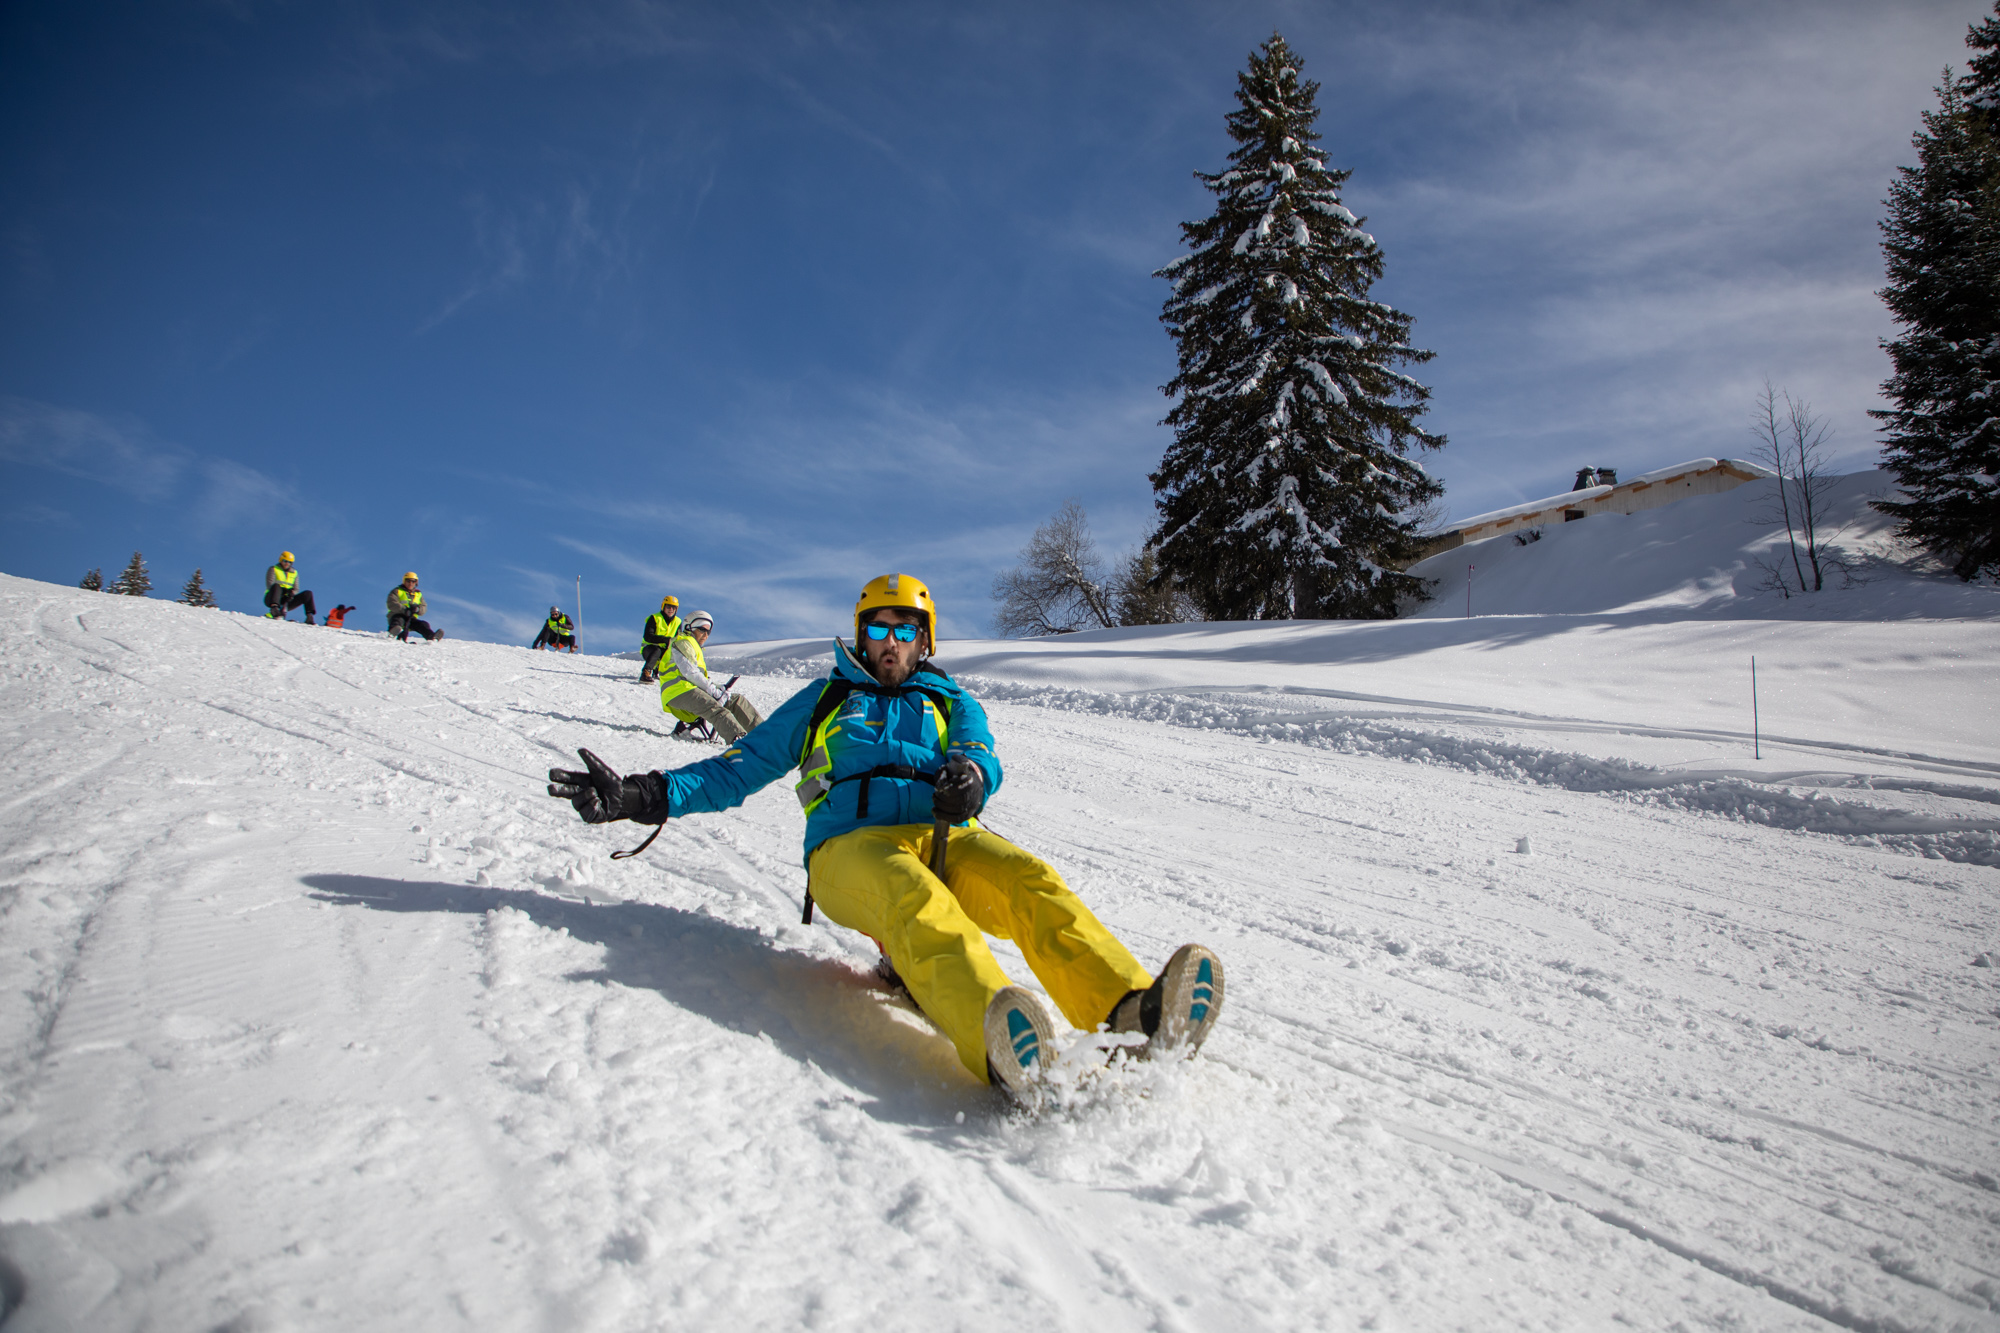 Break_The_Ice_LaClusaz_2019_web-7179.jpg